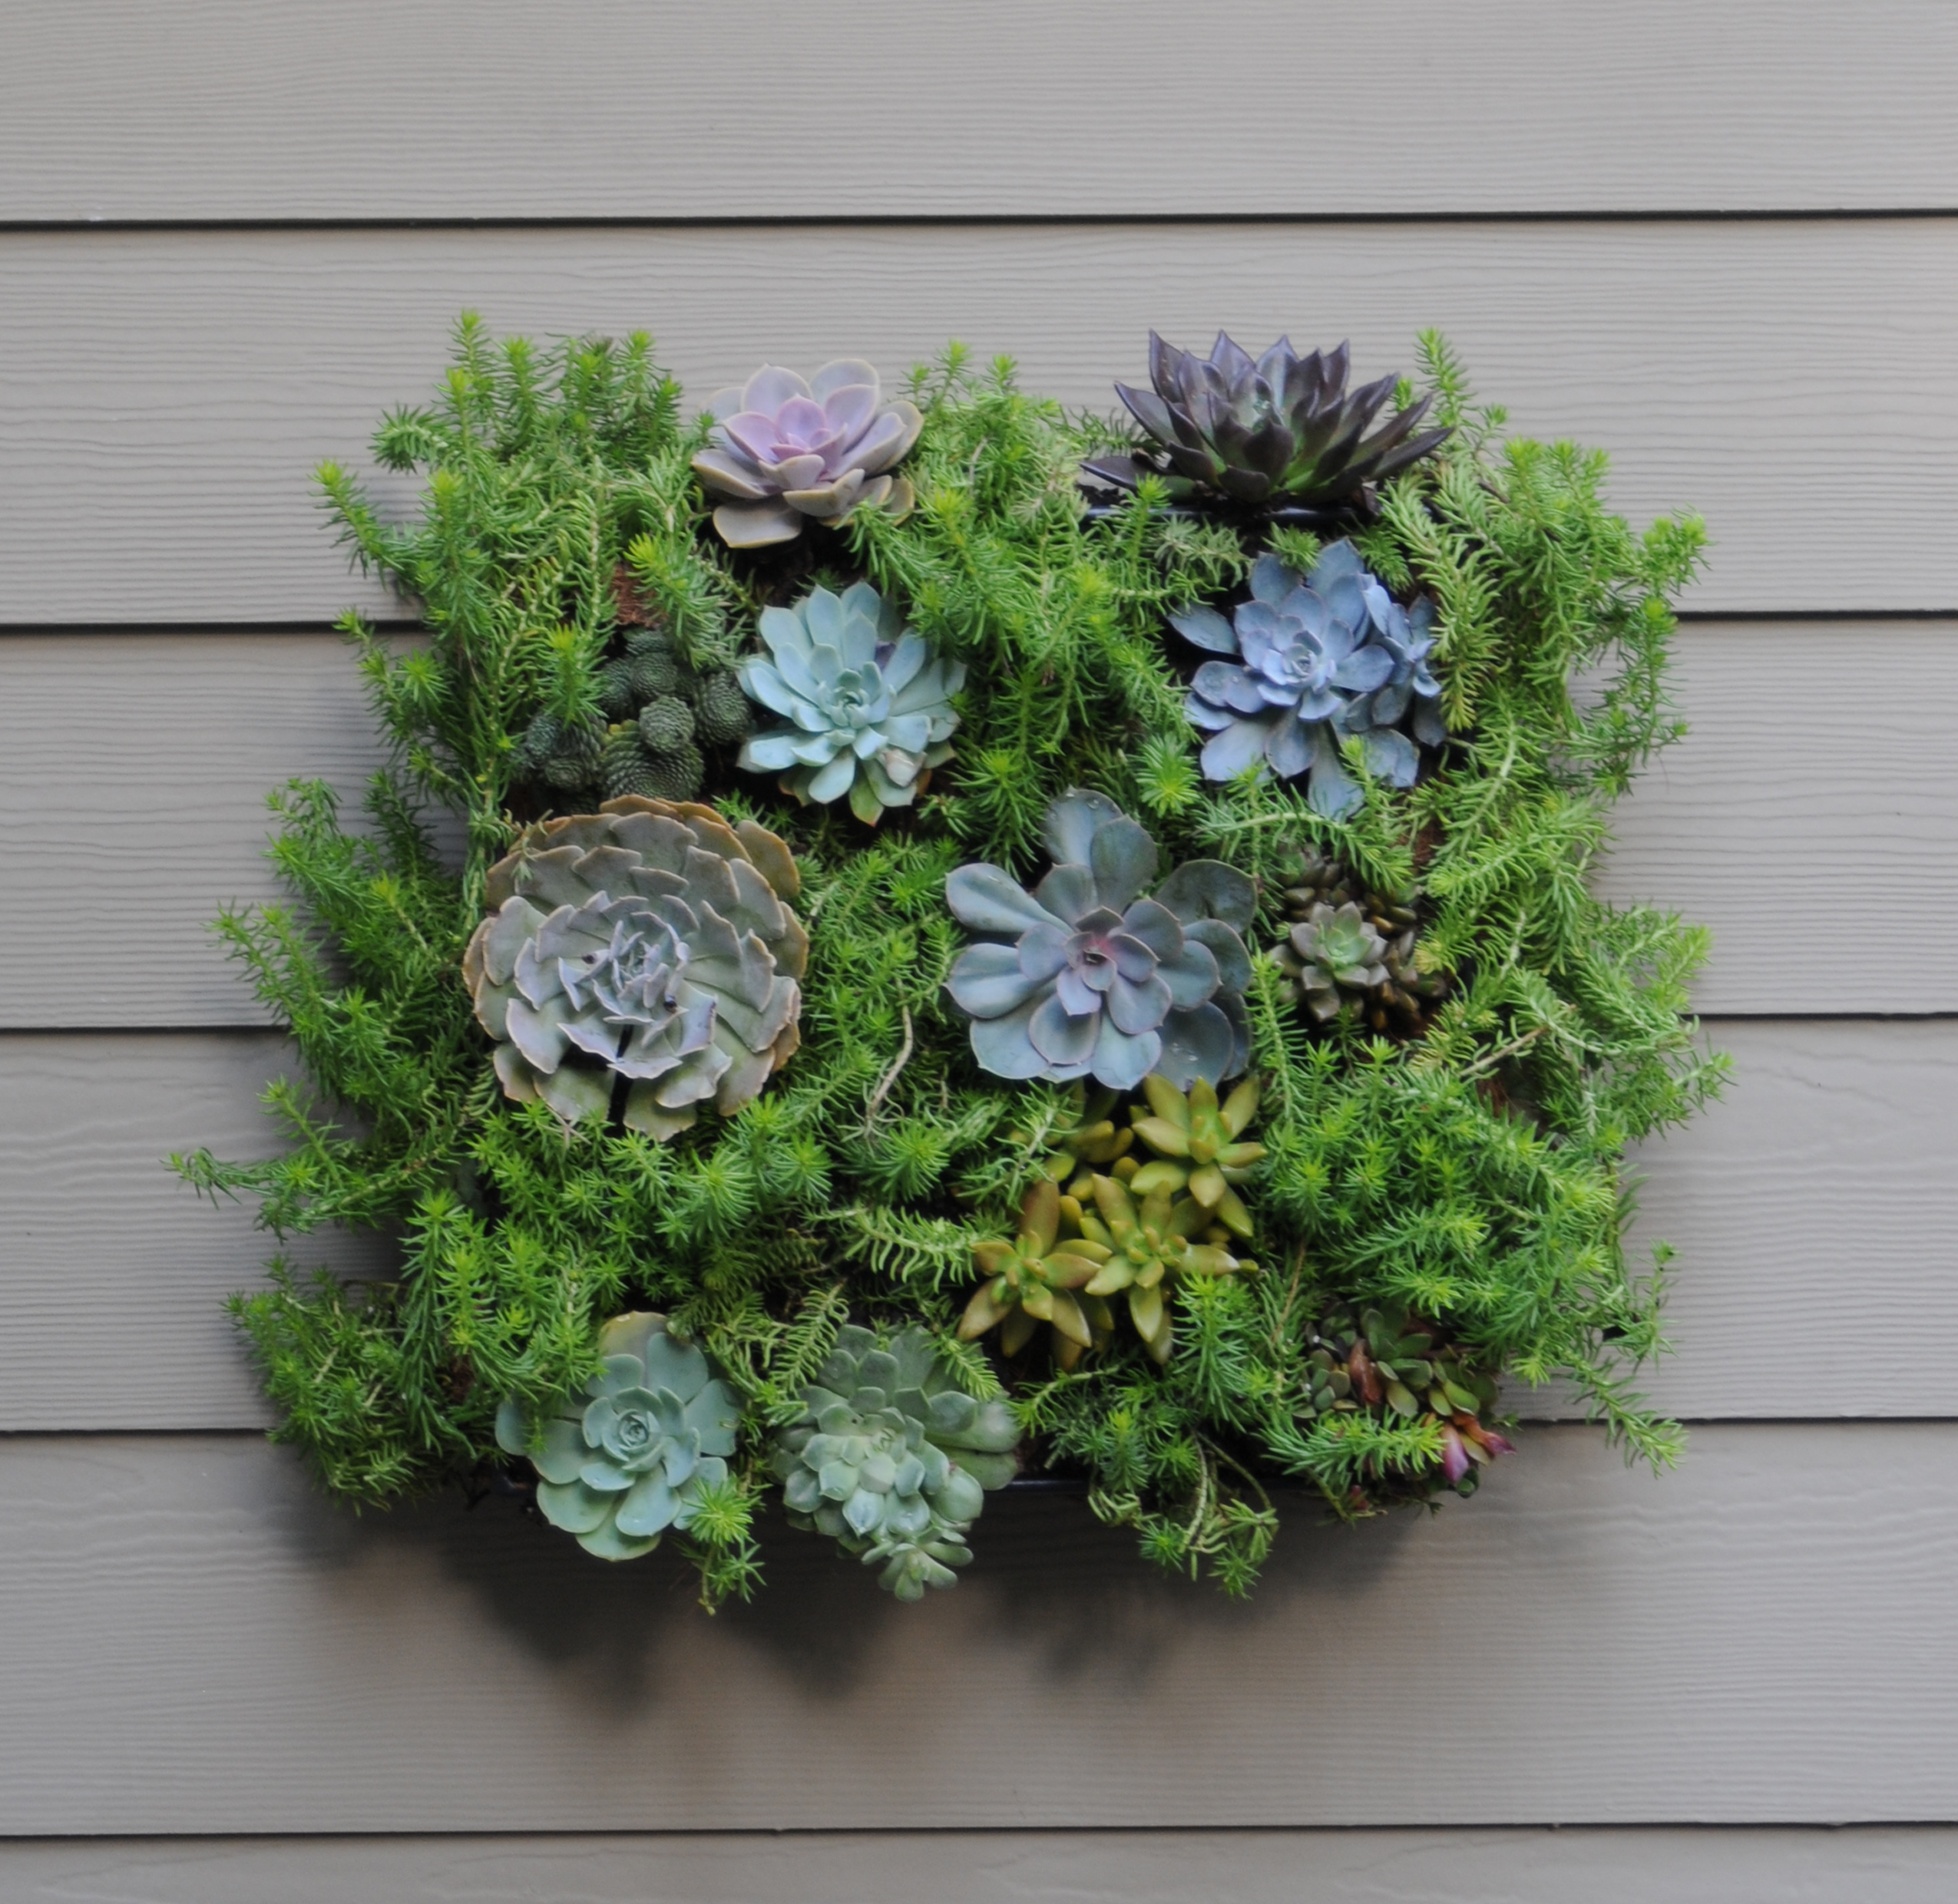 Living Wall Planters - PAMELA CRAWFORD LIVING WALL PLANTER W/